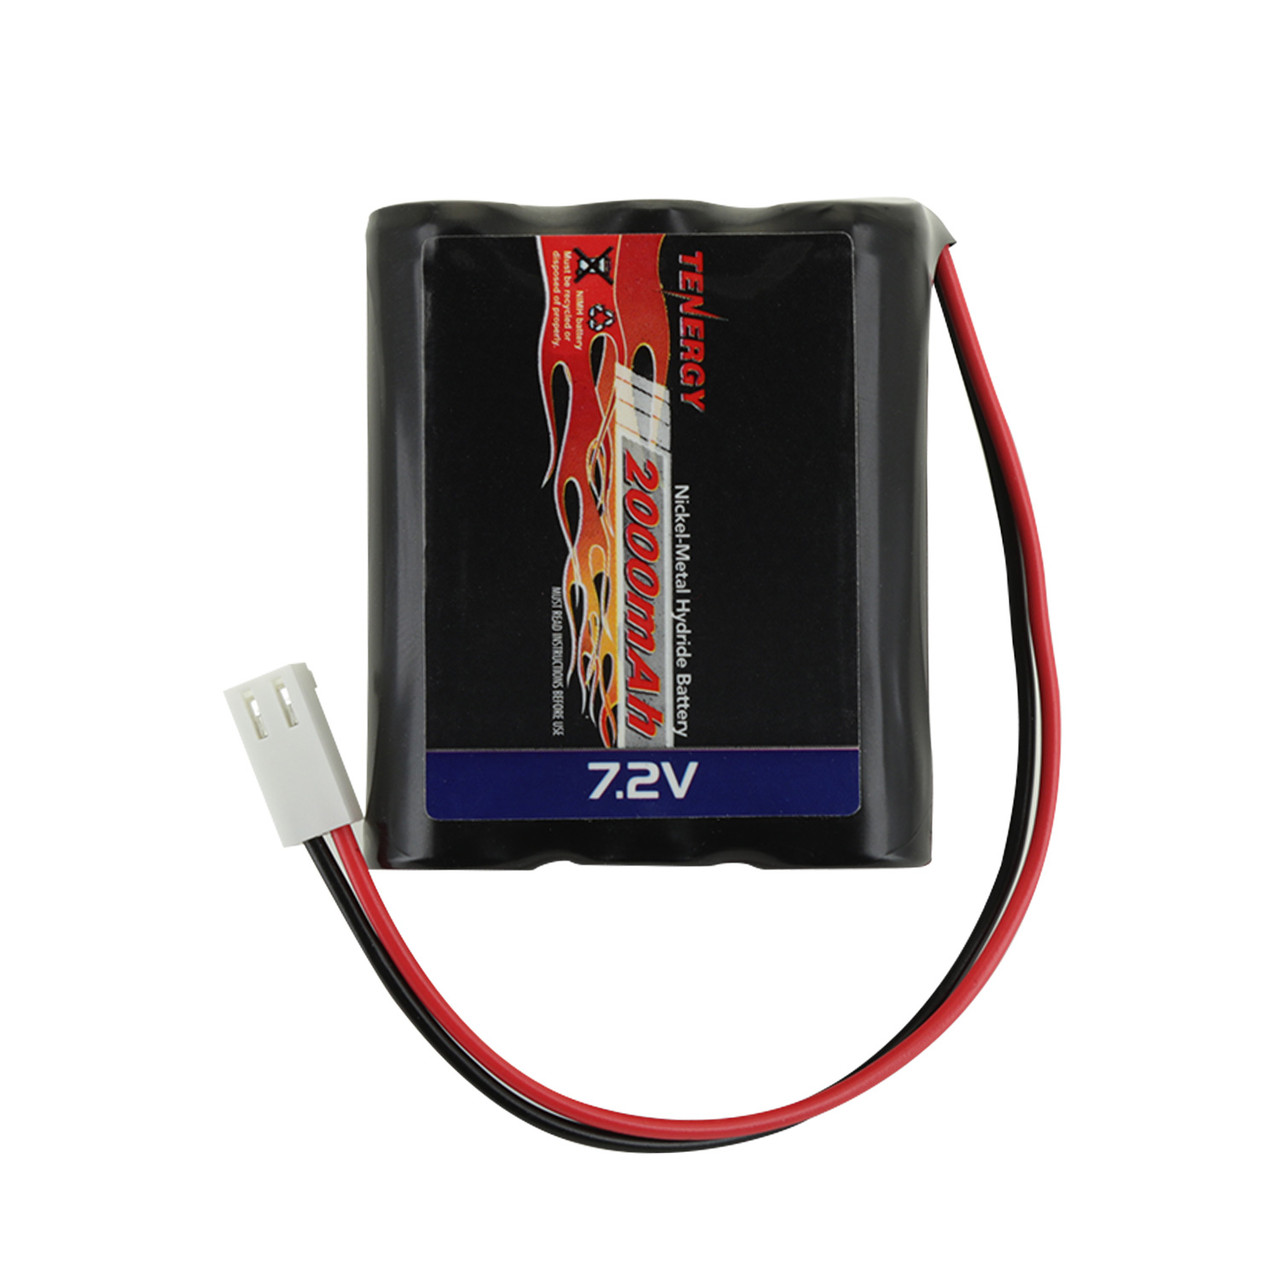 Tenergy 7.2V 2000mAh Square NiMH Rechargeable Battery Pack w/ Molex Connector